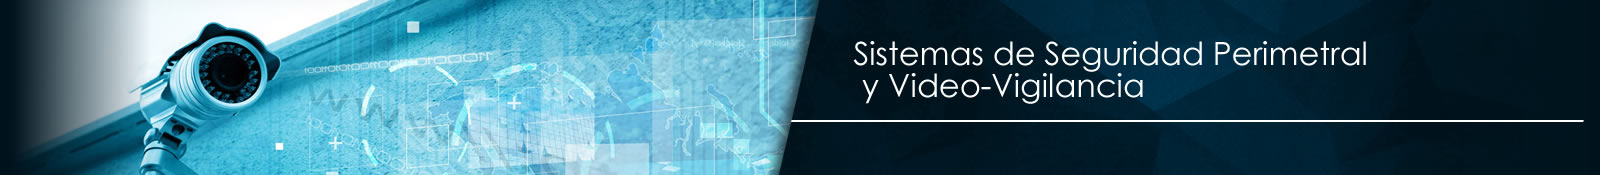 banner mision vision